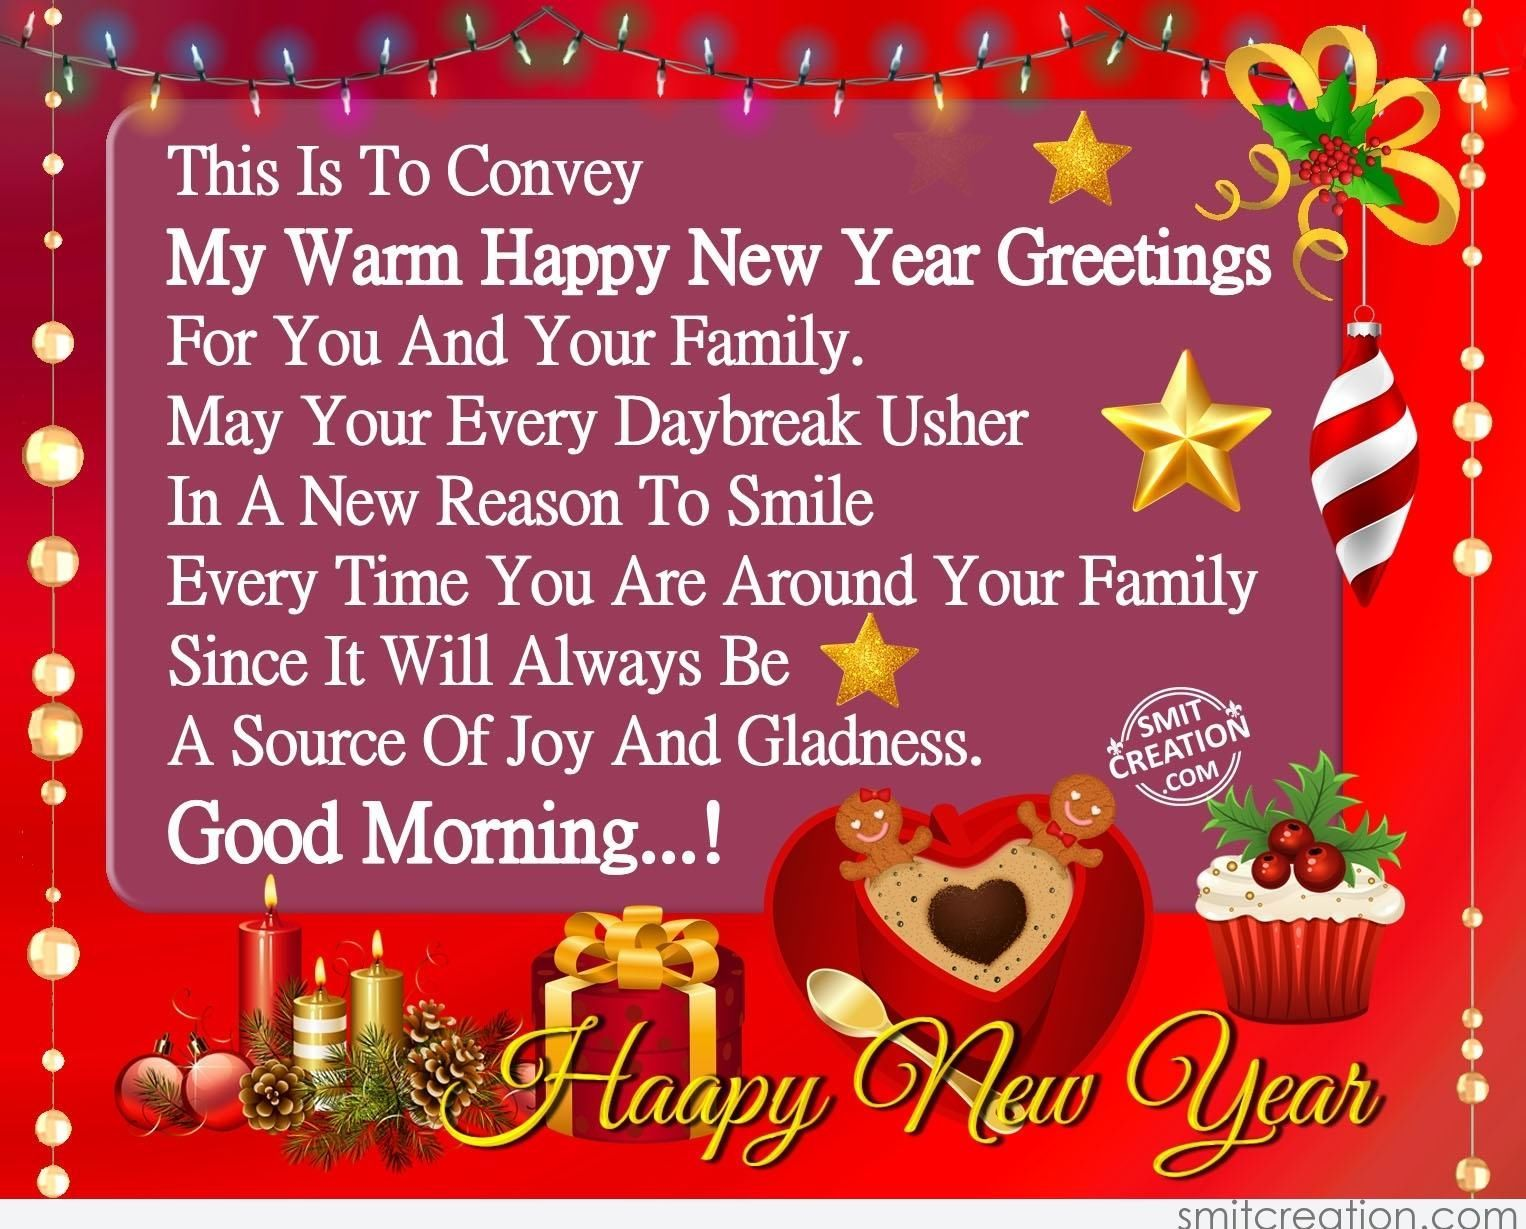 Good Morning Happy New Year Morning Good Morning New Year Happy New